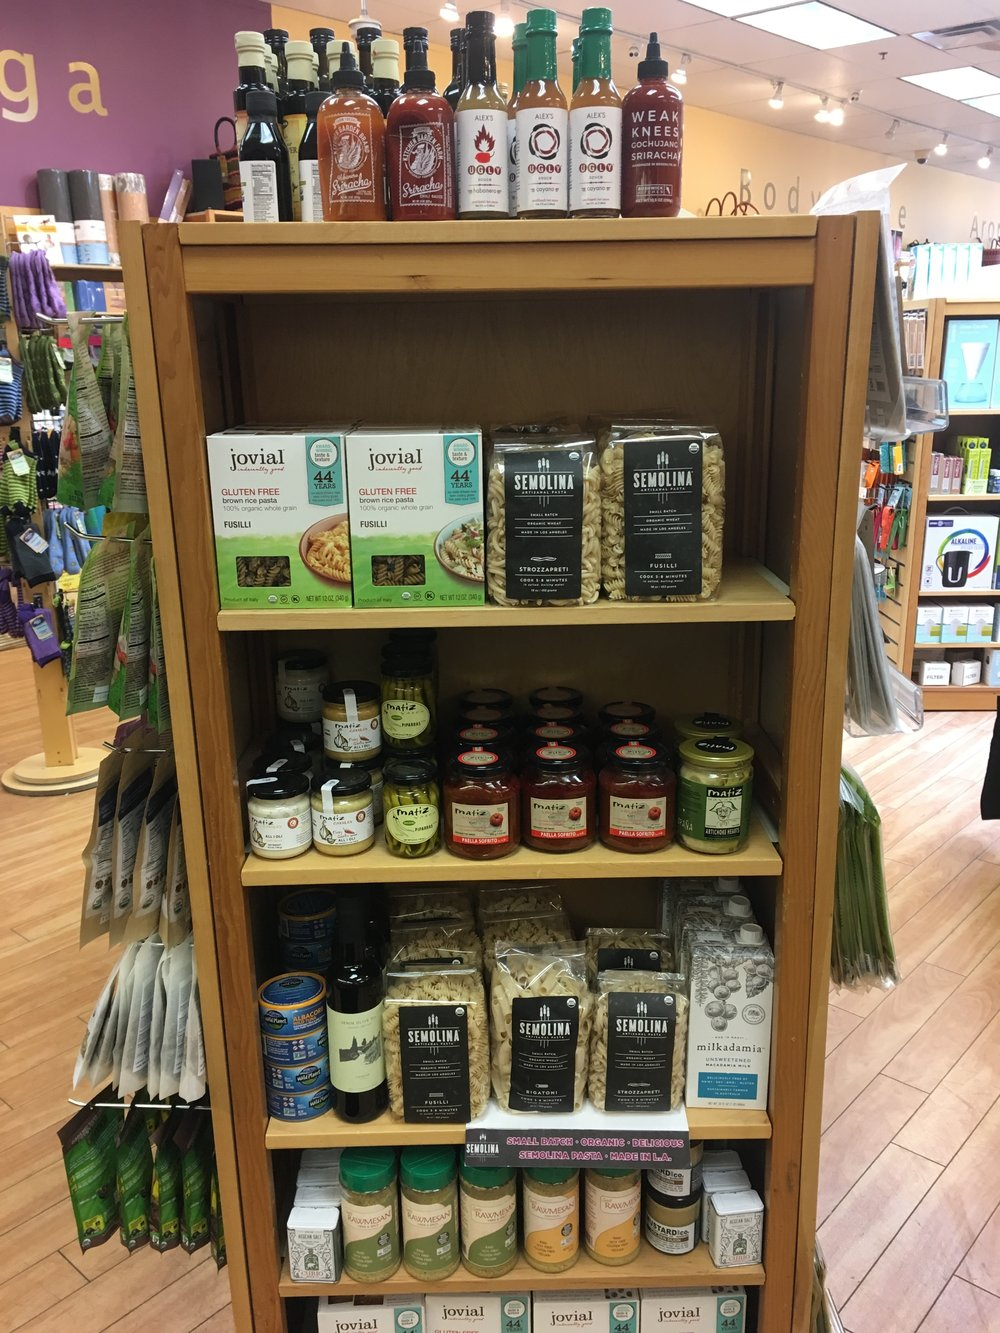 Stop in and check out John's featured ingredients in our grocery section!